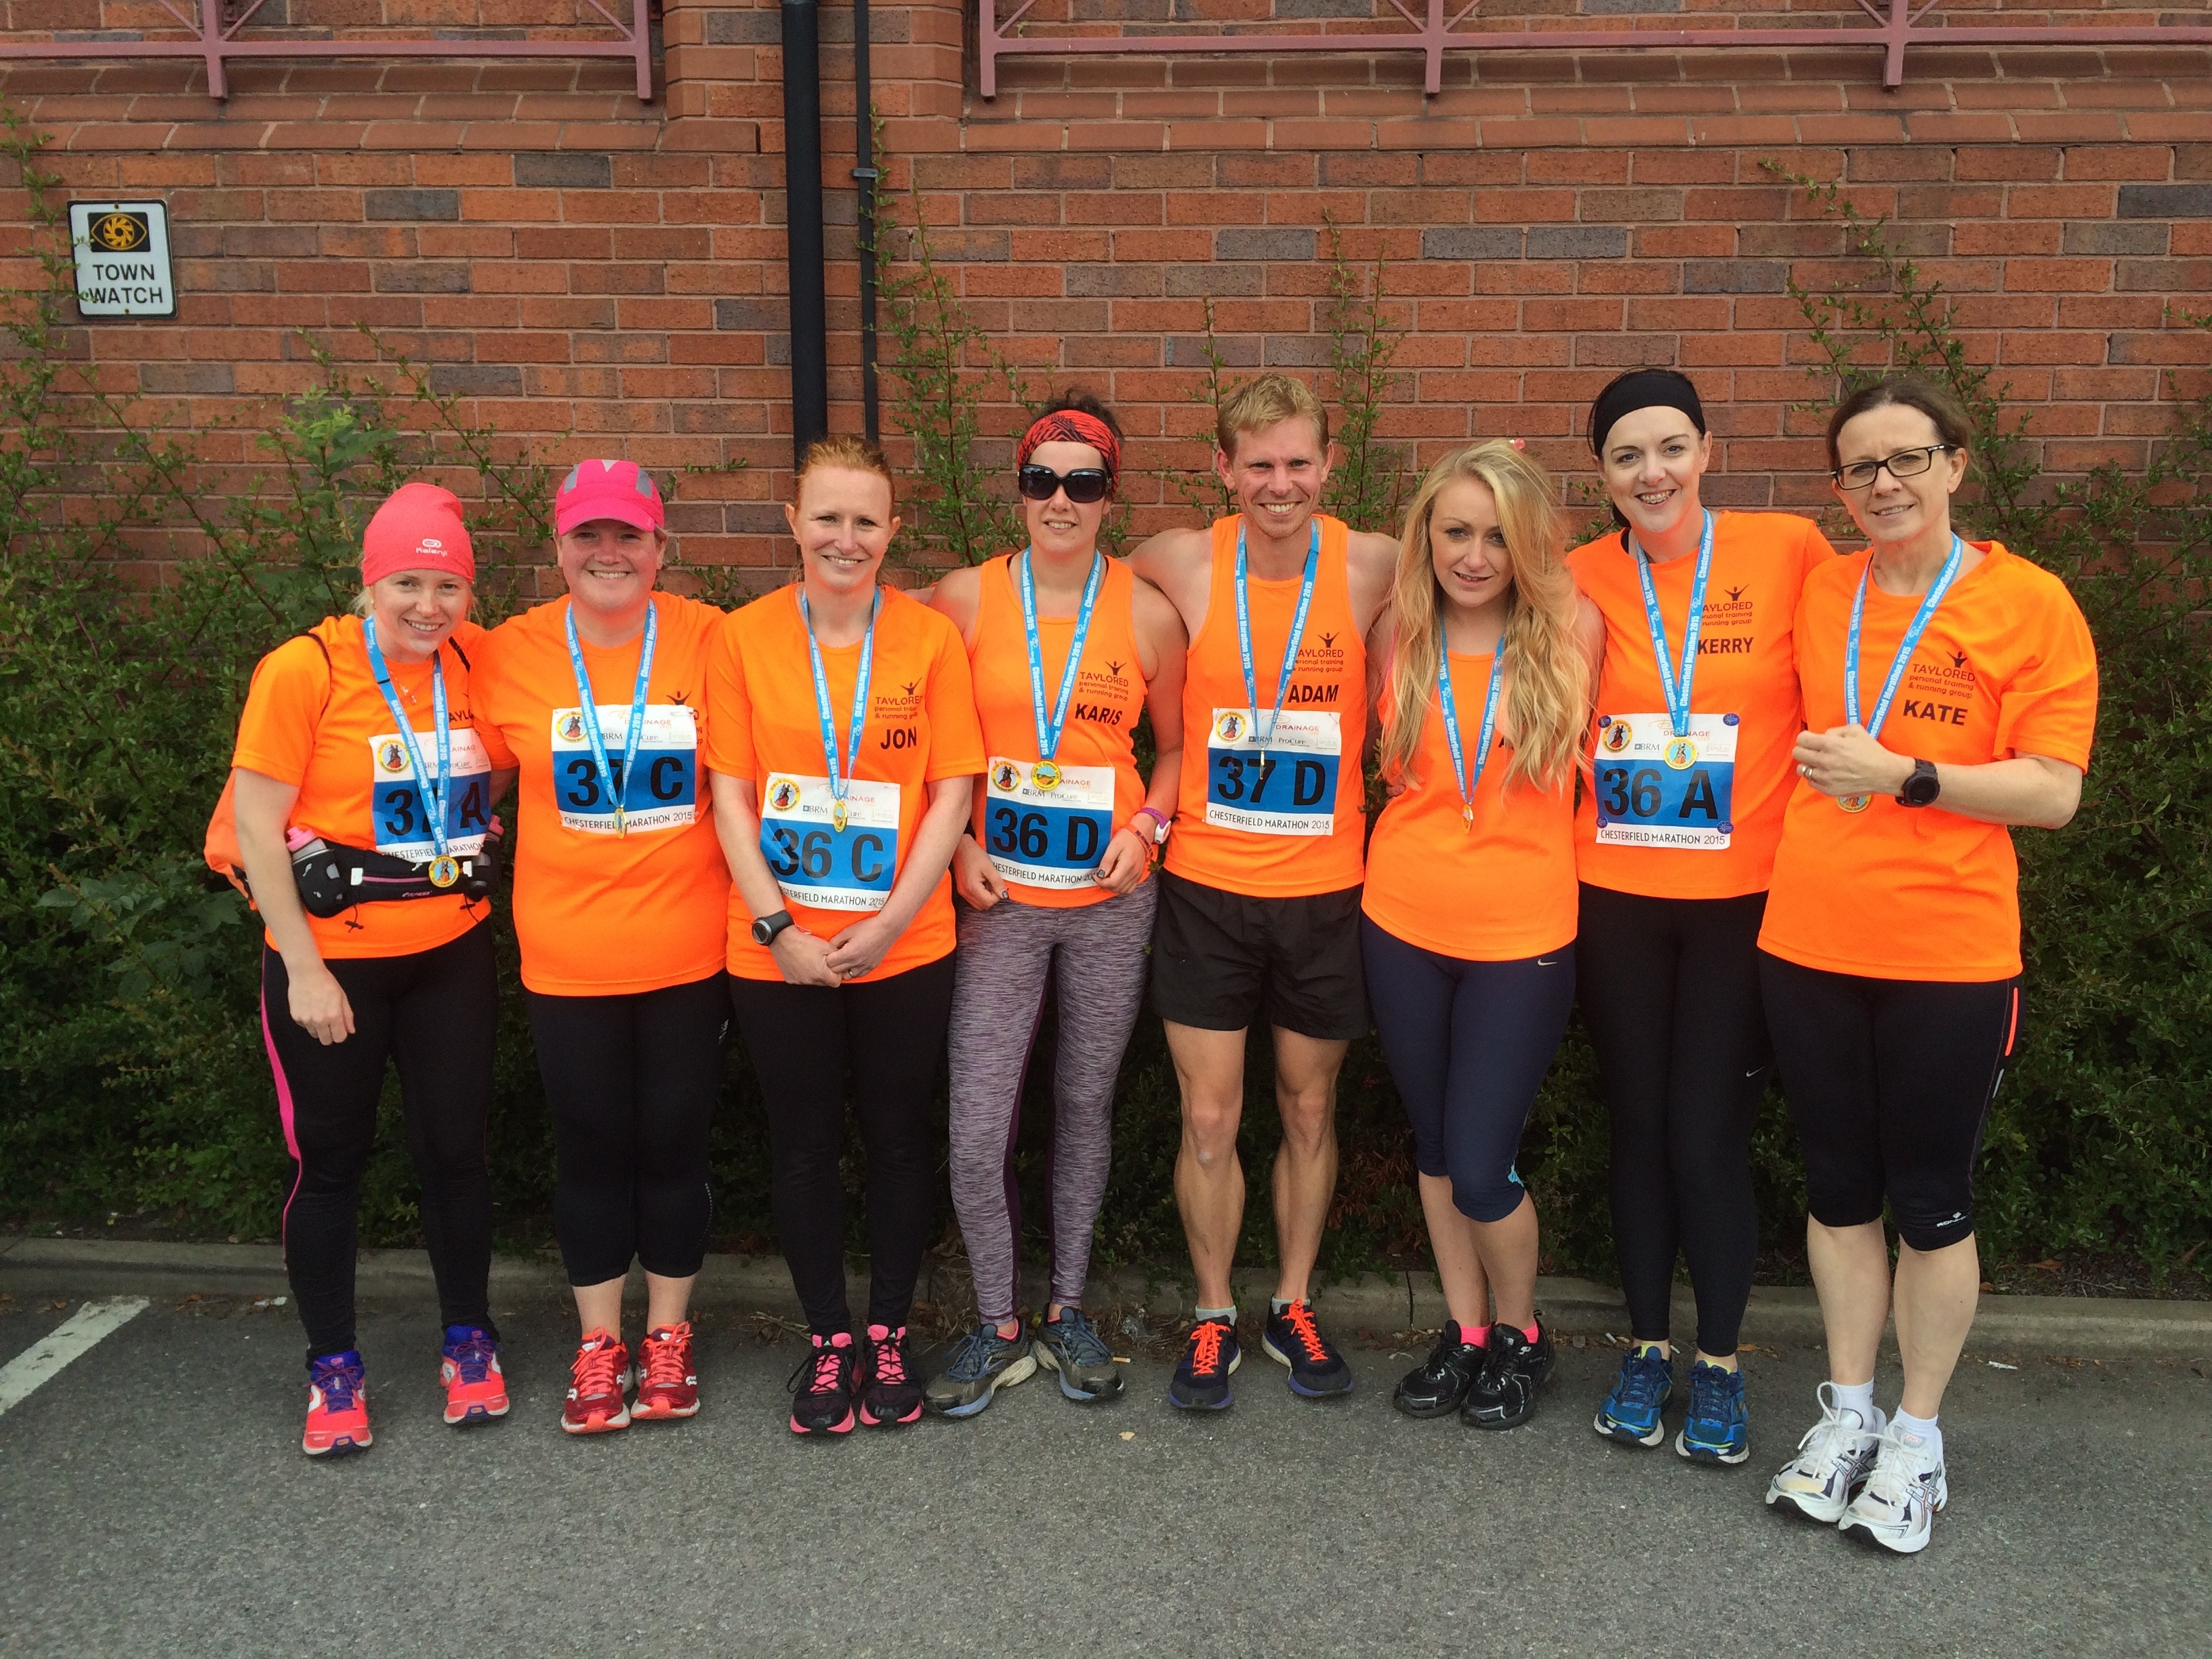 Taylored Running Group at the Chesterfield Marathon Relay 2015